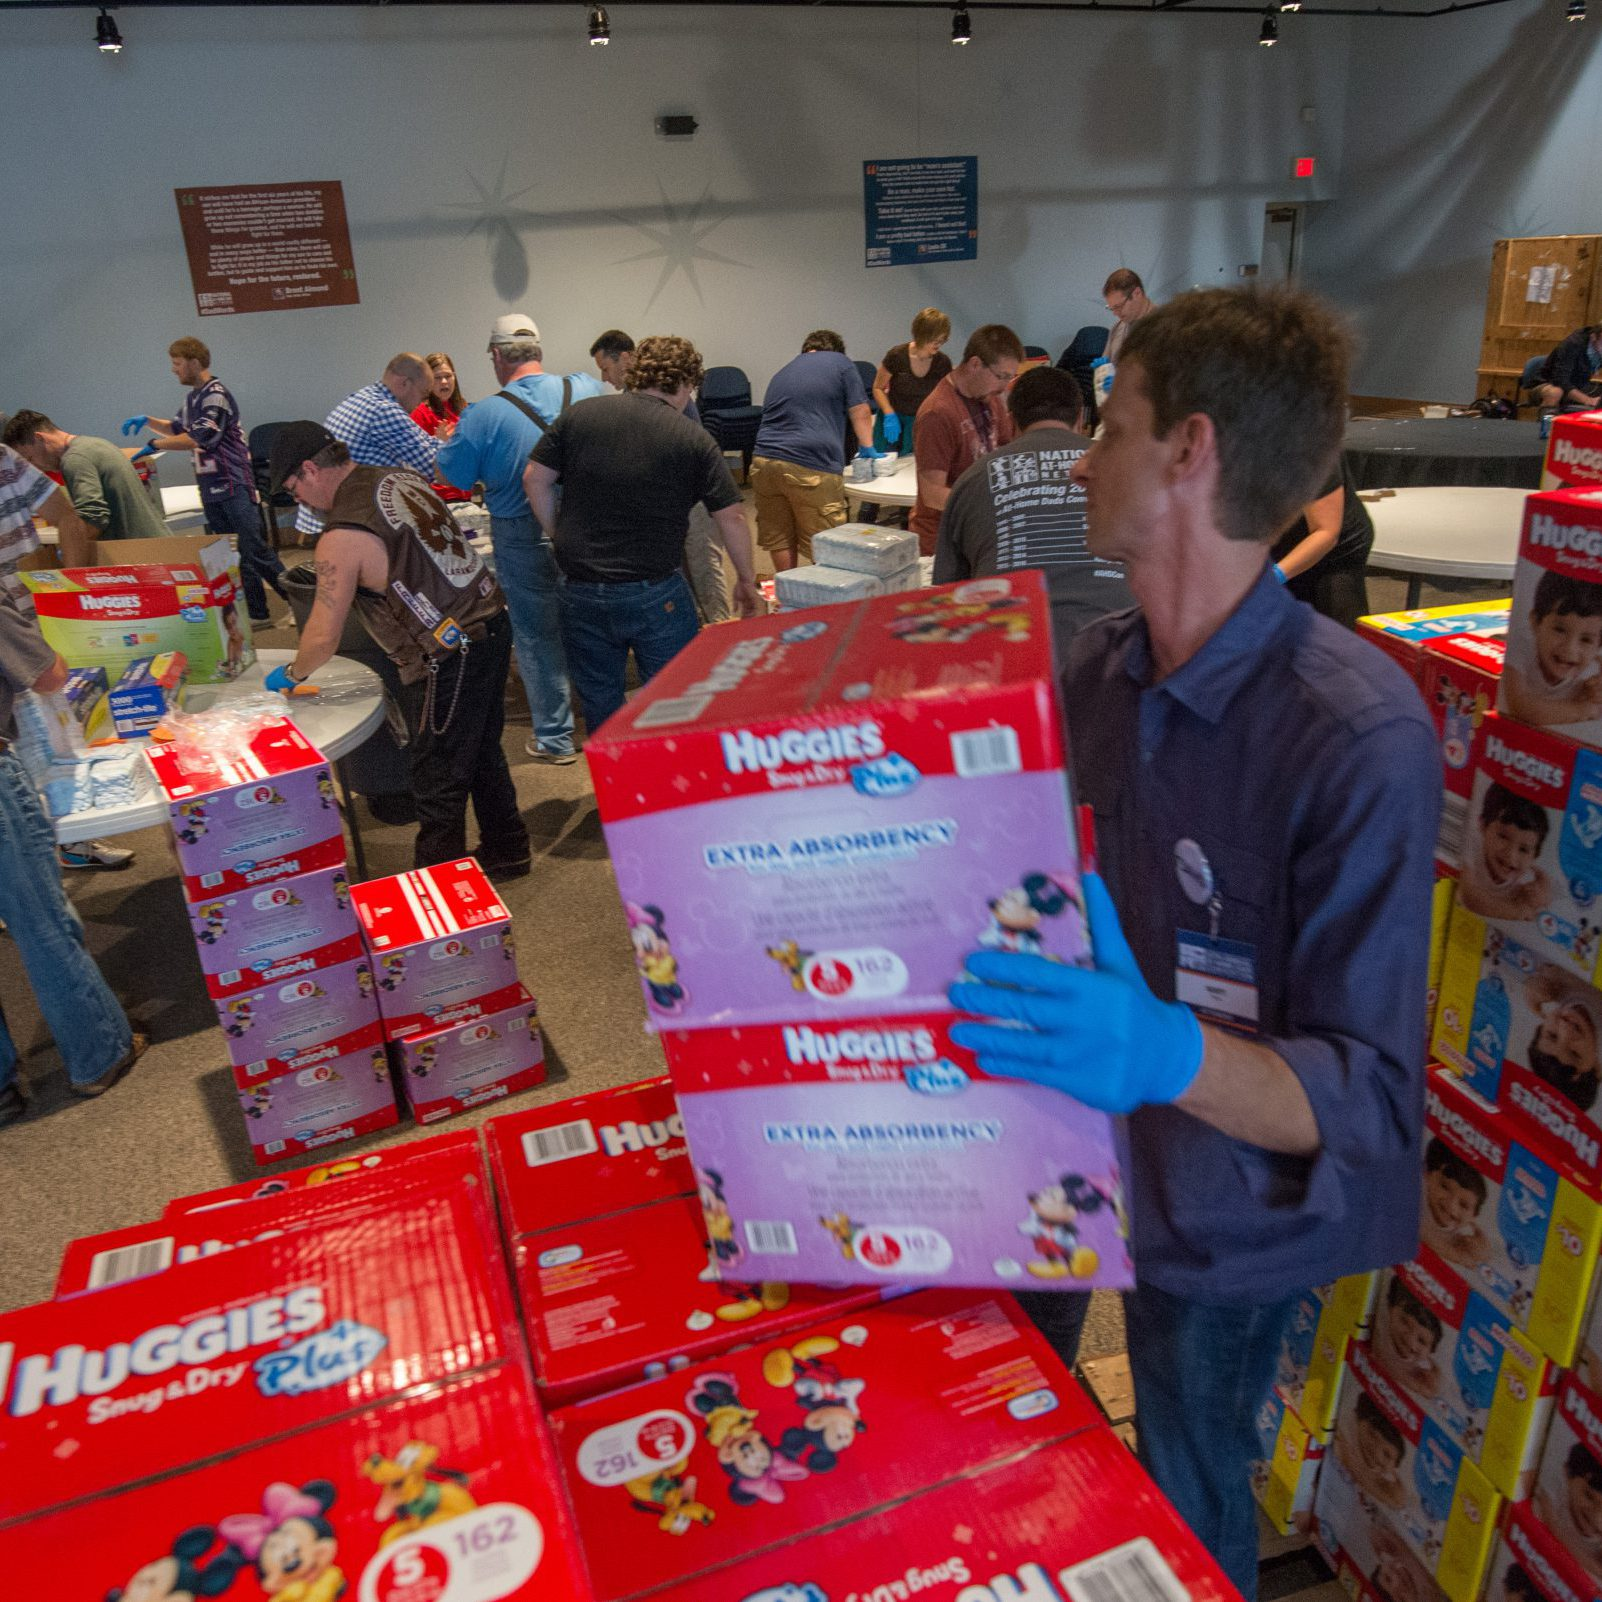 At-Home Dads help sort donations for local diaper banks, in a Community Service activity sponsored by Huggies.